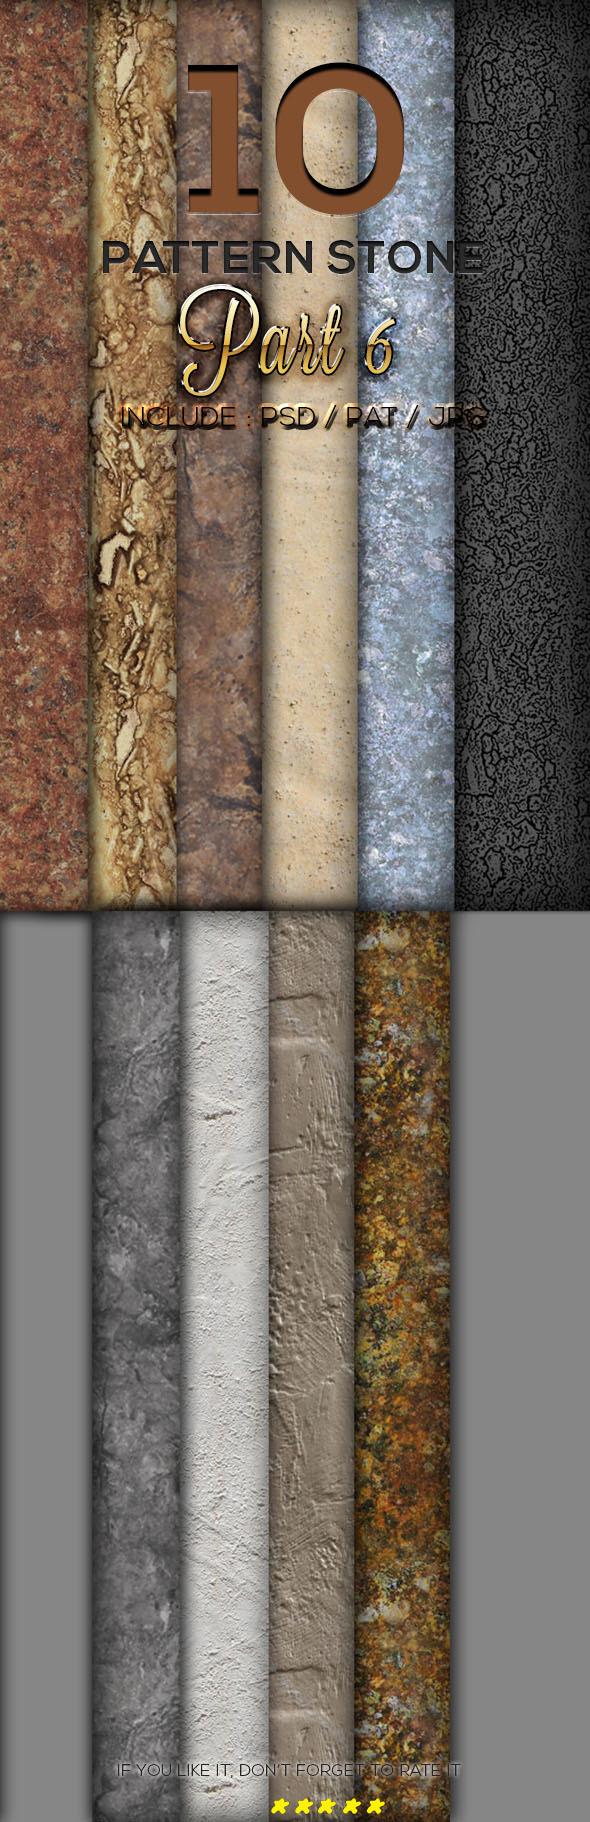 GraphicRiver 10 Stone Texture Pattern Part 6 10 Stone Texture 9908384